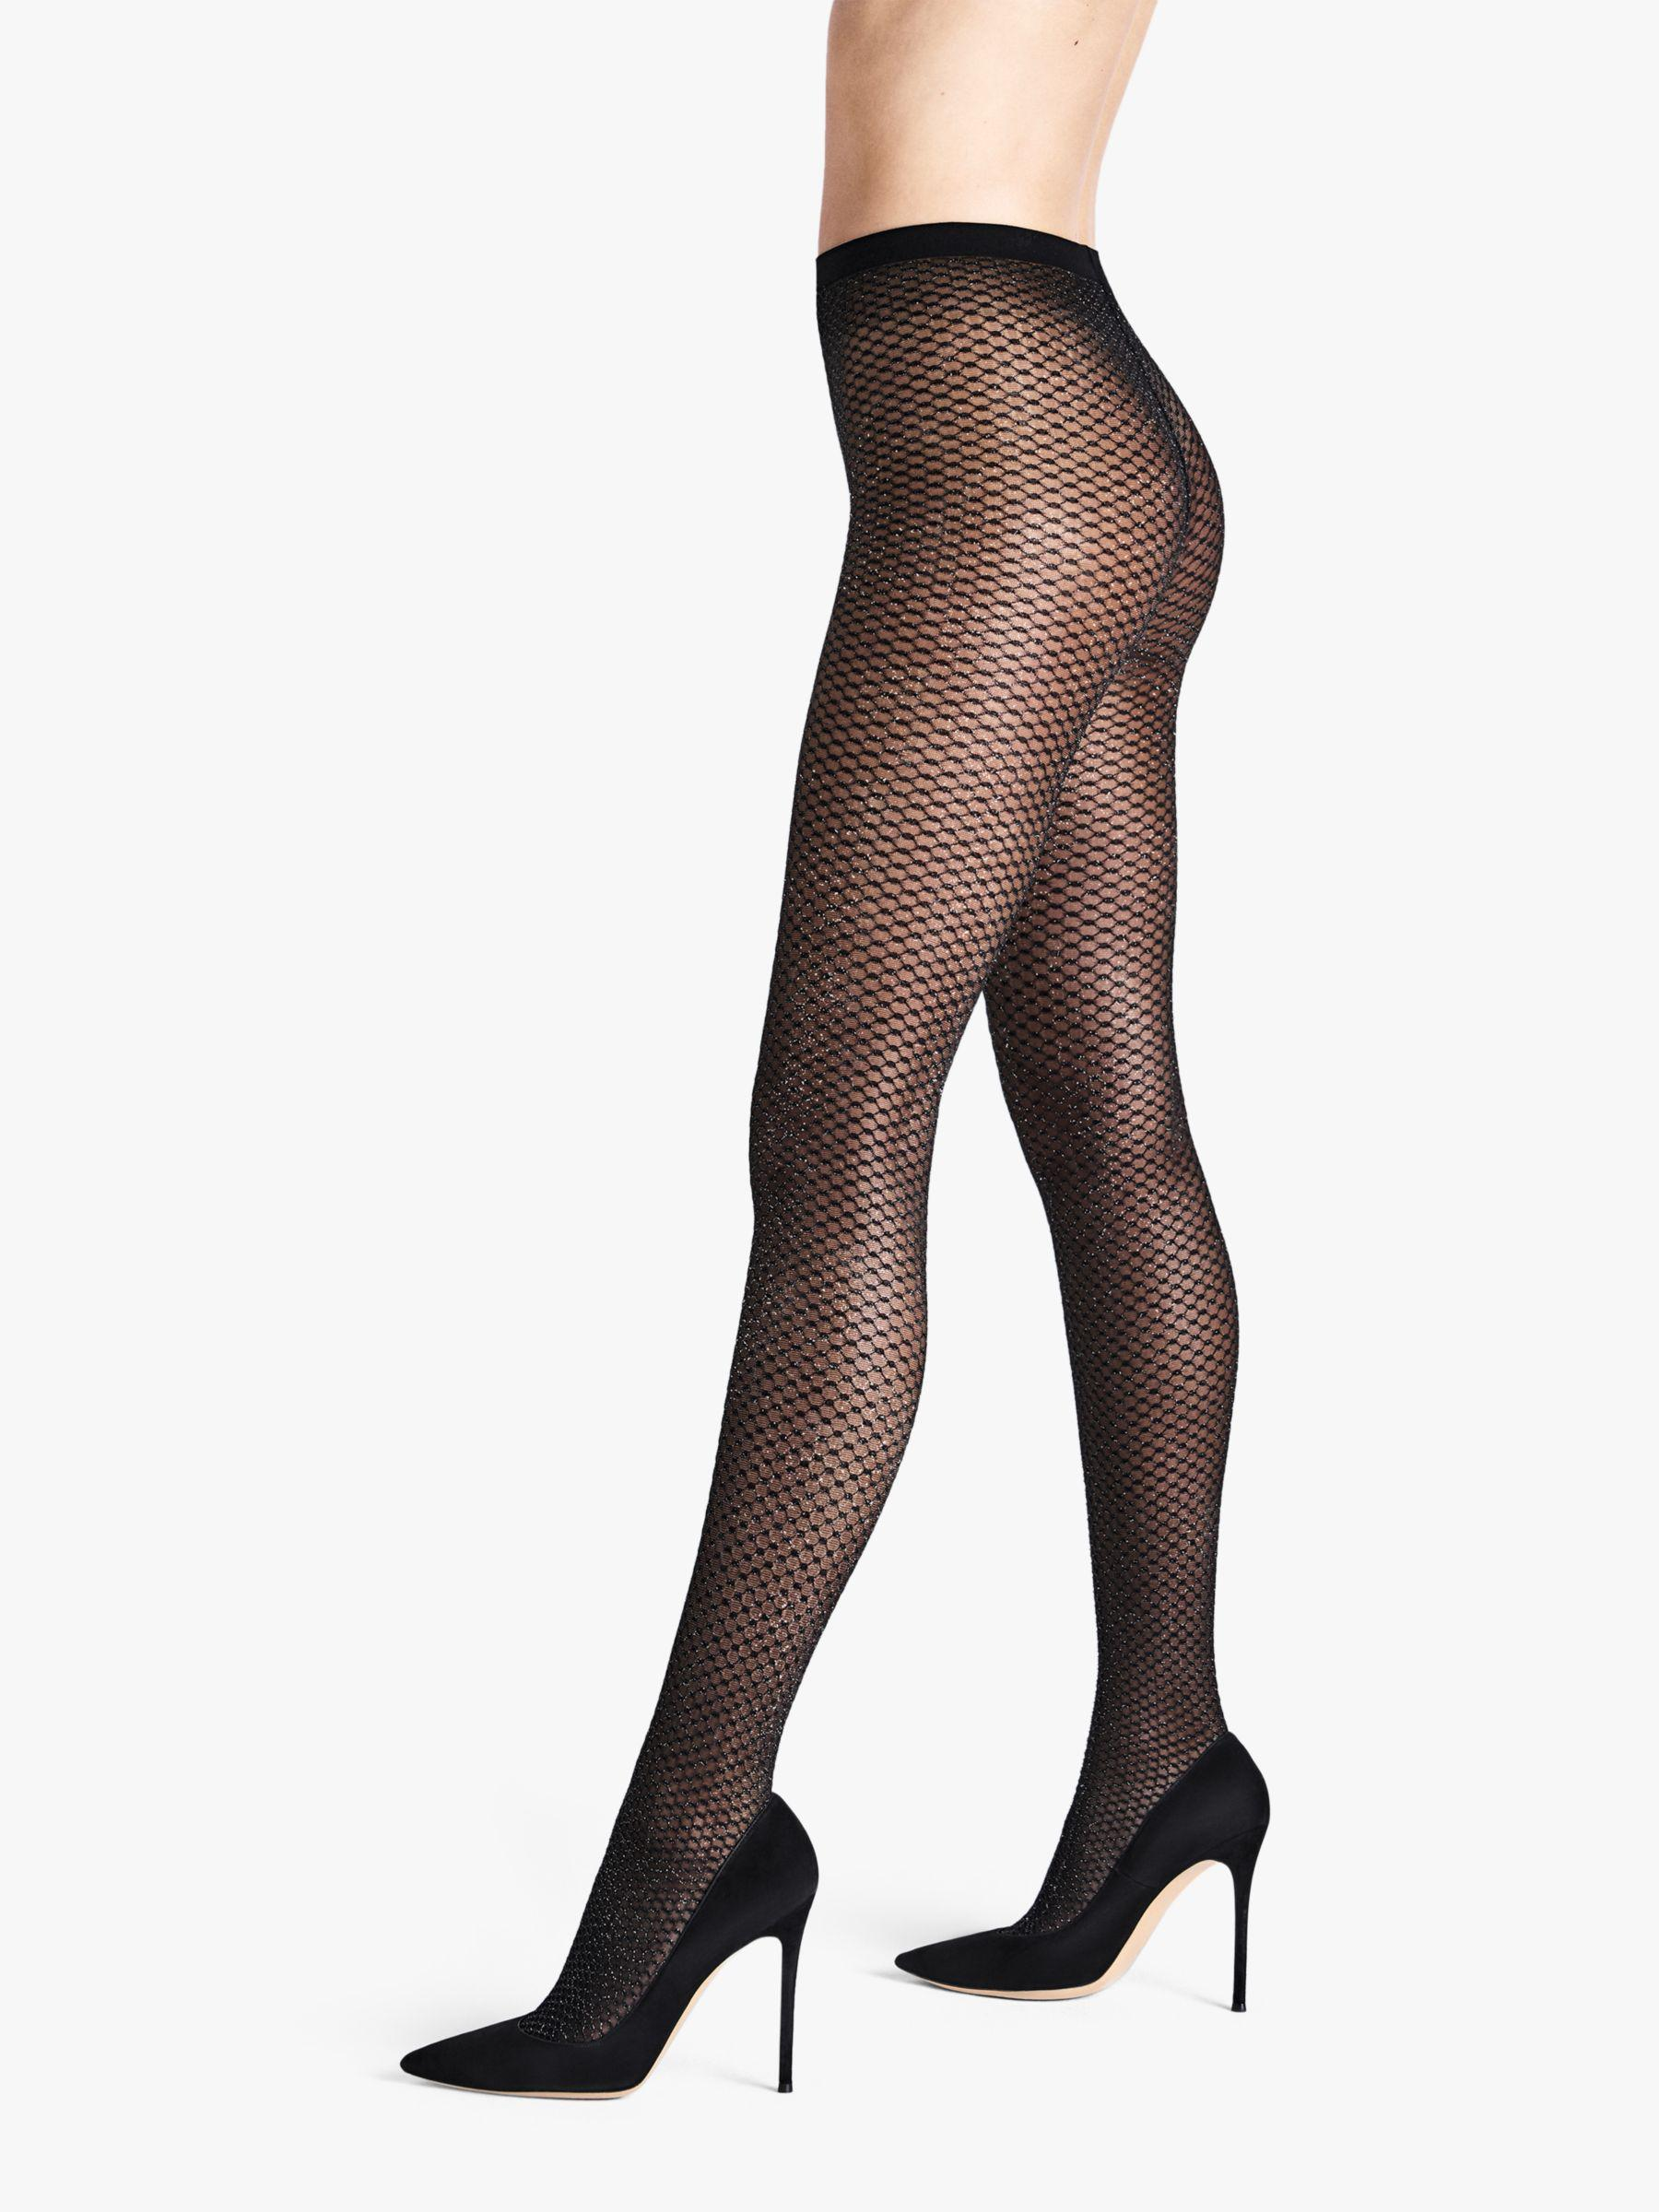 Wolford 20 Denier Night Sparkle Sheer Tights in Black - Lyst 57c1e0742